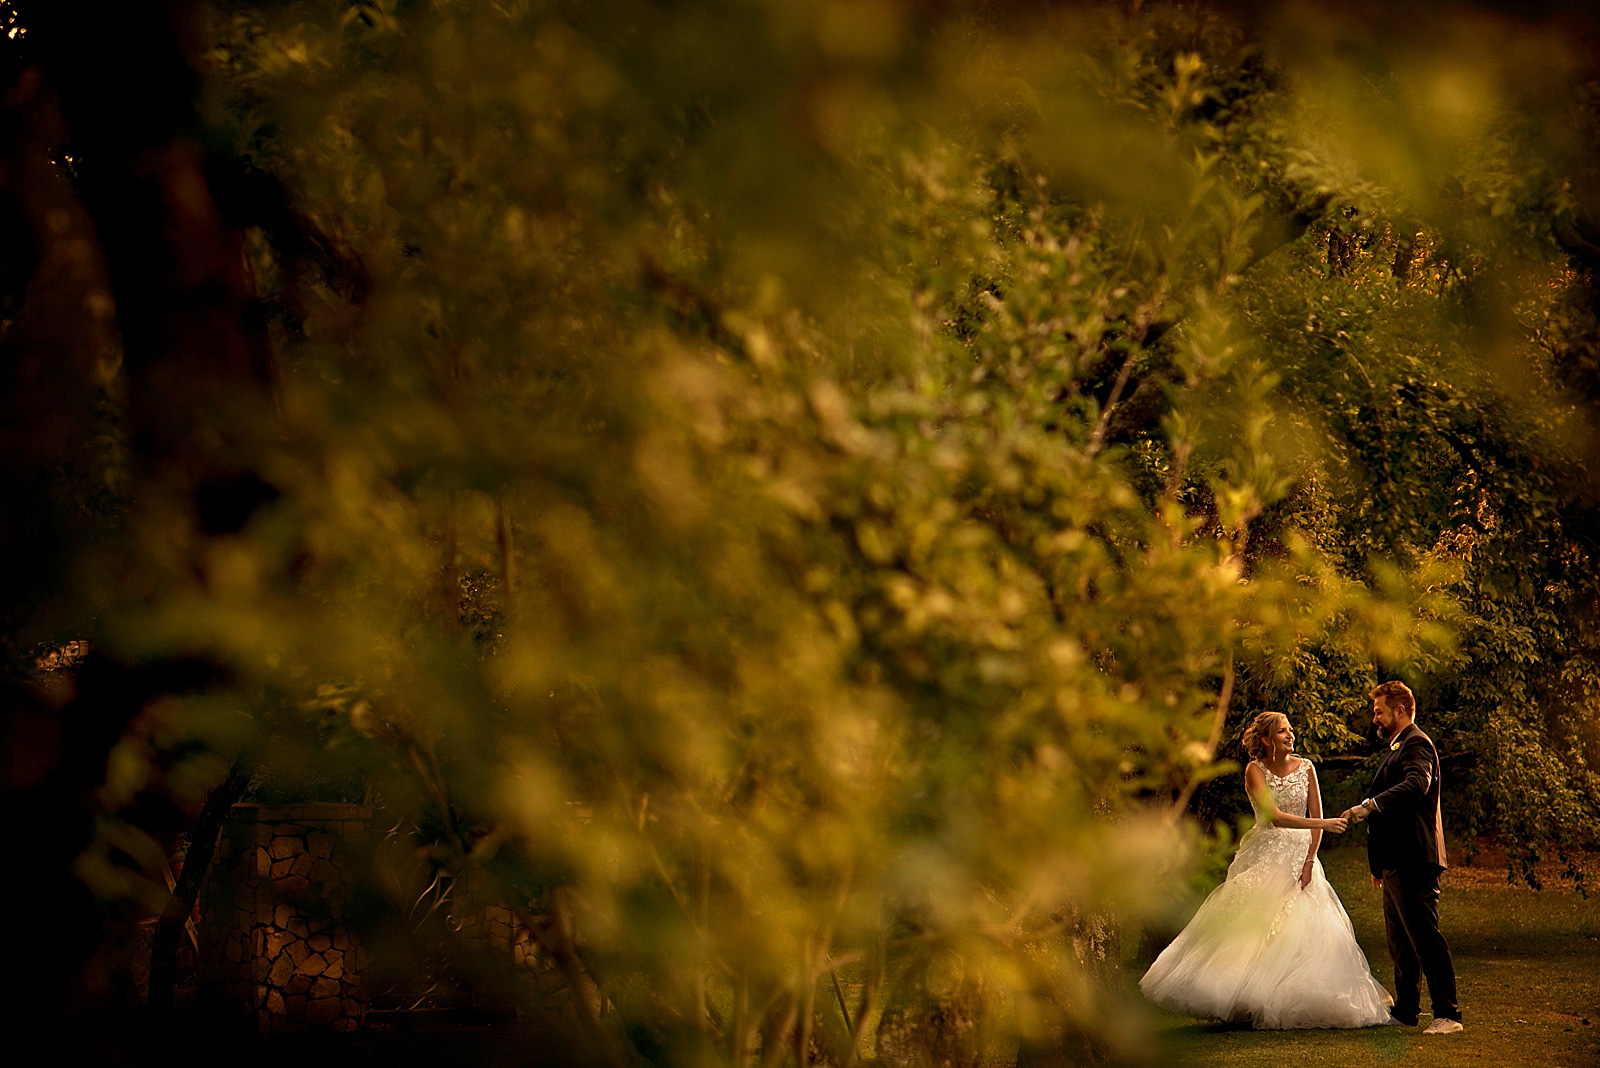 Orchards-Wedding-Top-South-African-Wedding-Photographer-Jacki-Bruniquel-001-0789